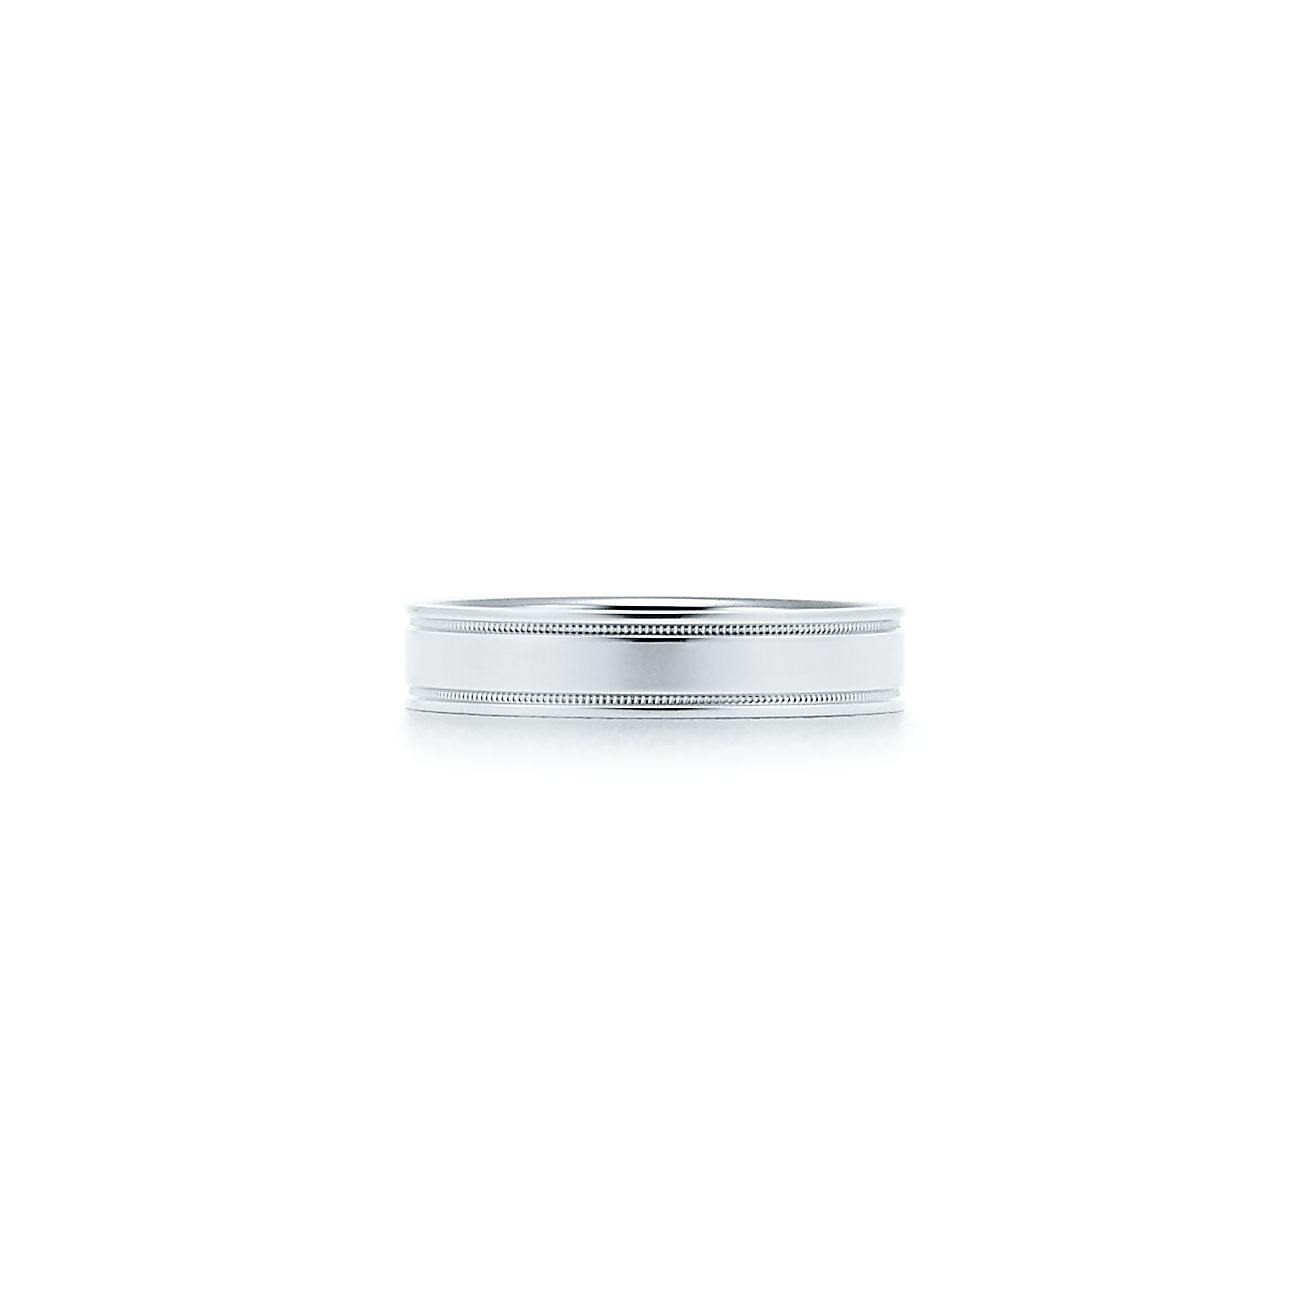 Tiffany flat double milgrain wedding band ring in platinum 4 mm tiffany flat double milgrain wedding band ring in platinum 4 mm wide tiffany co junglespirit Image collections